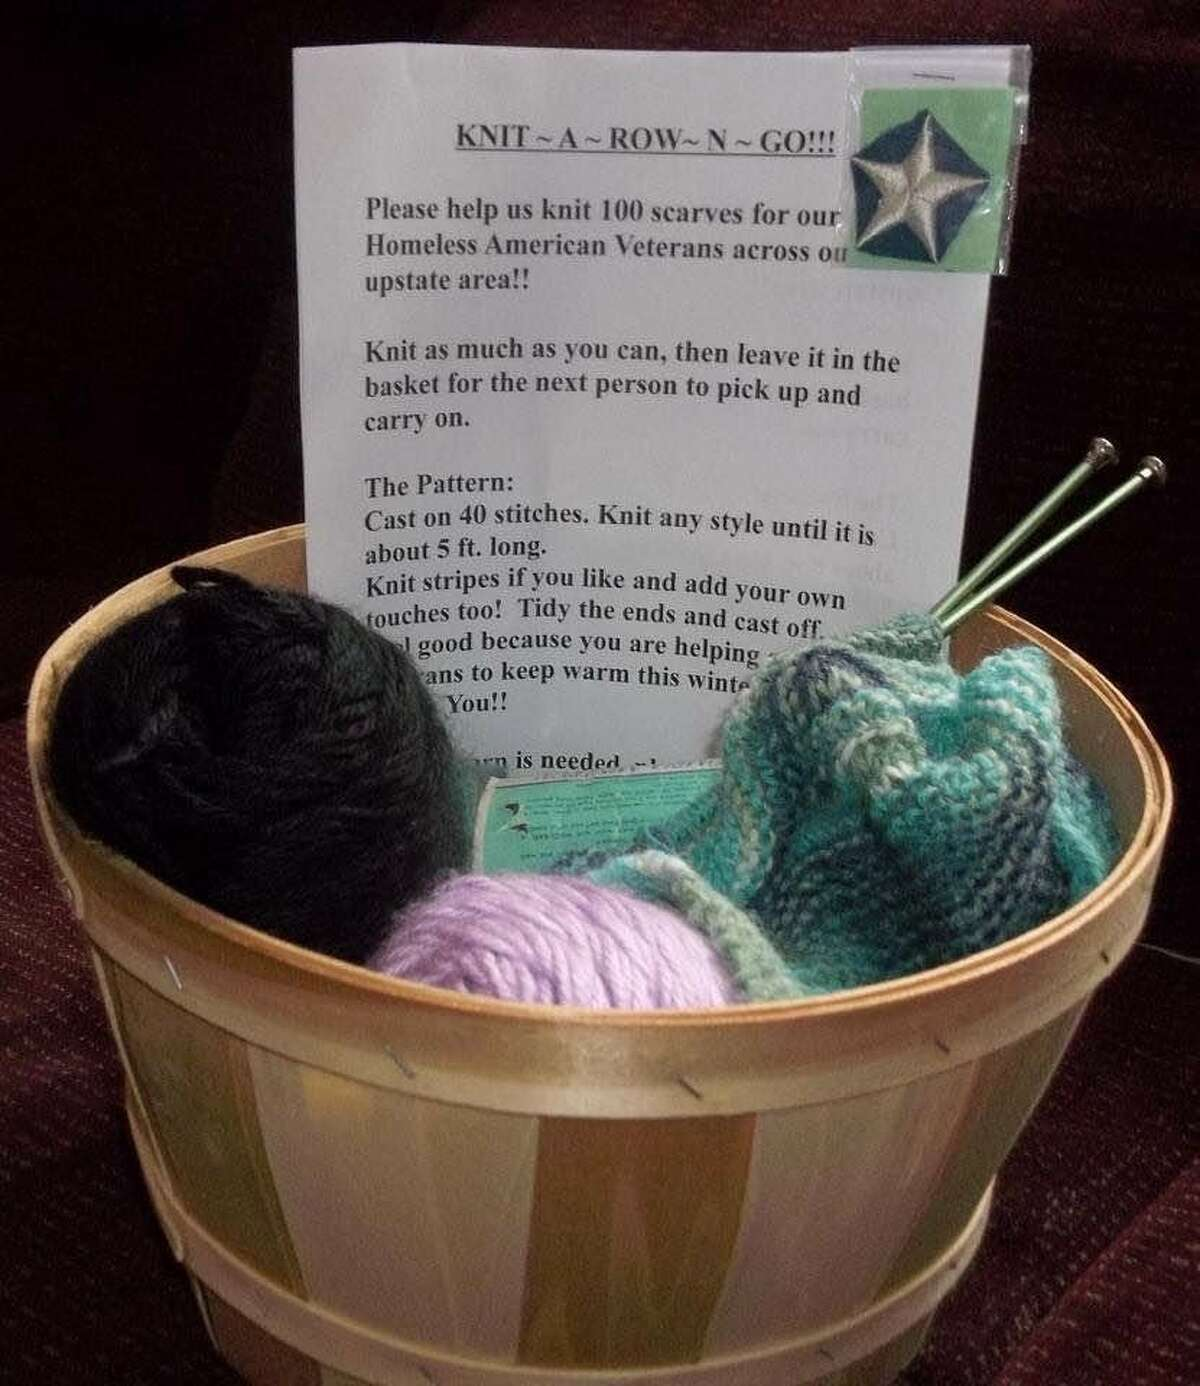 Knit A Row N Go kits have been placed in various locations